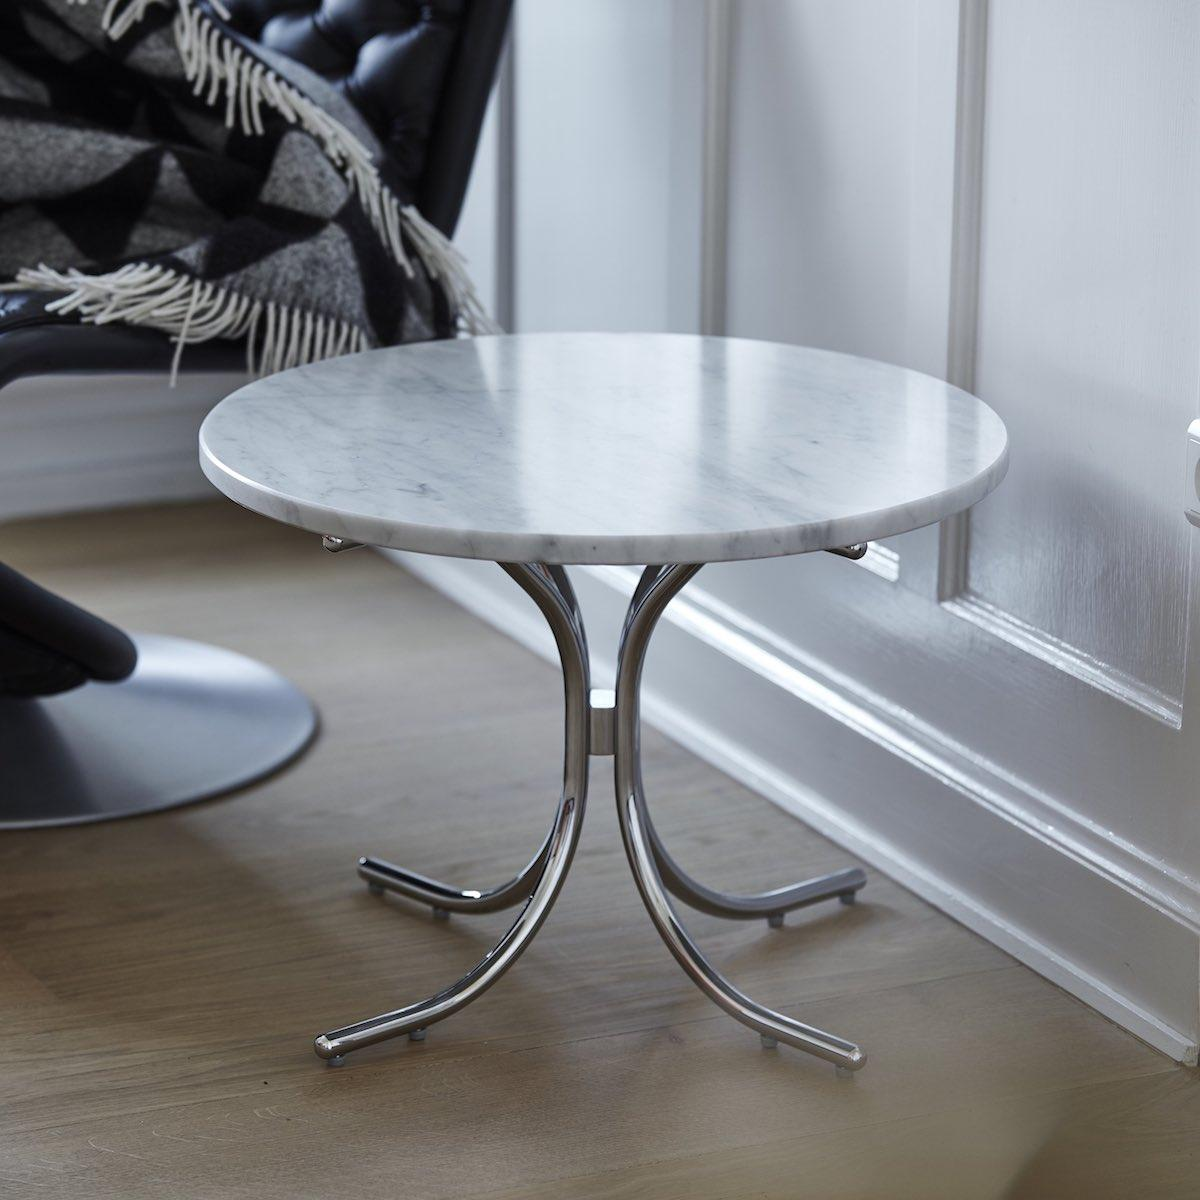 Modular_Table_White_Marble_with_Lounge_Chair